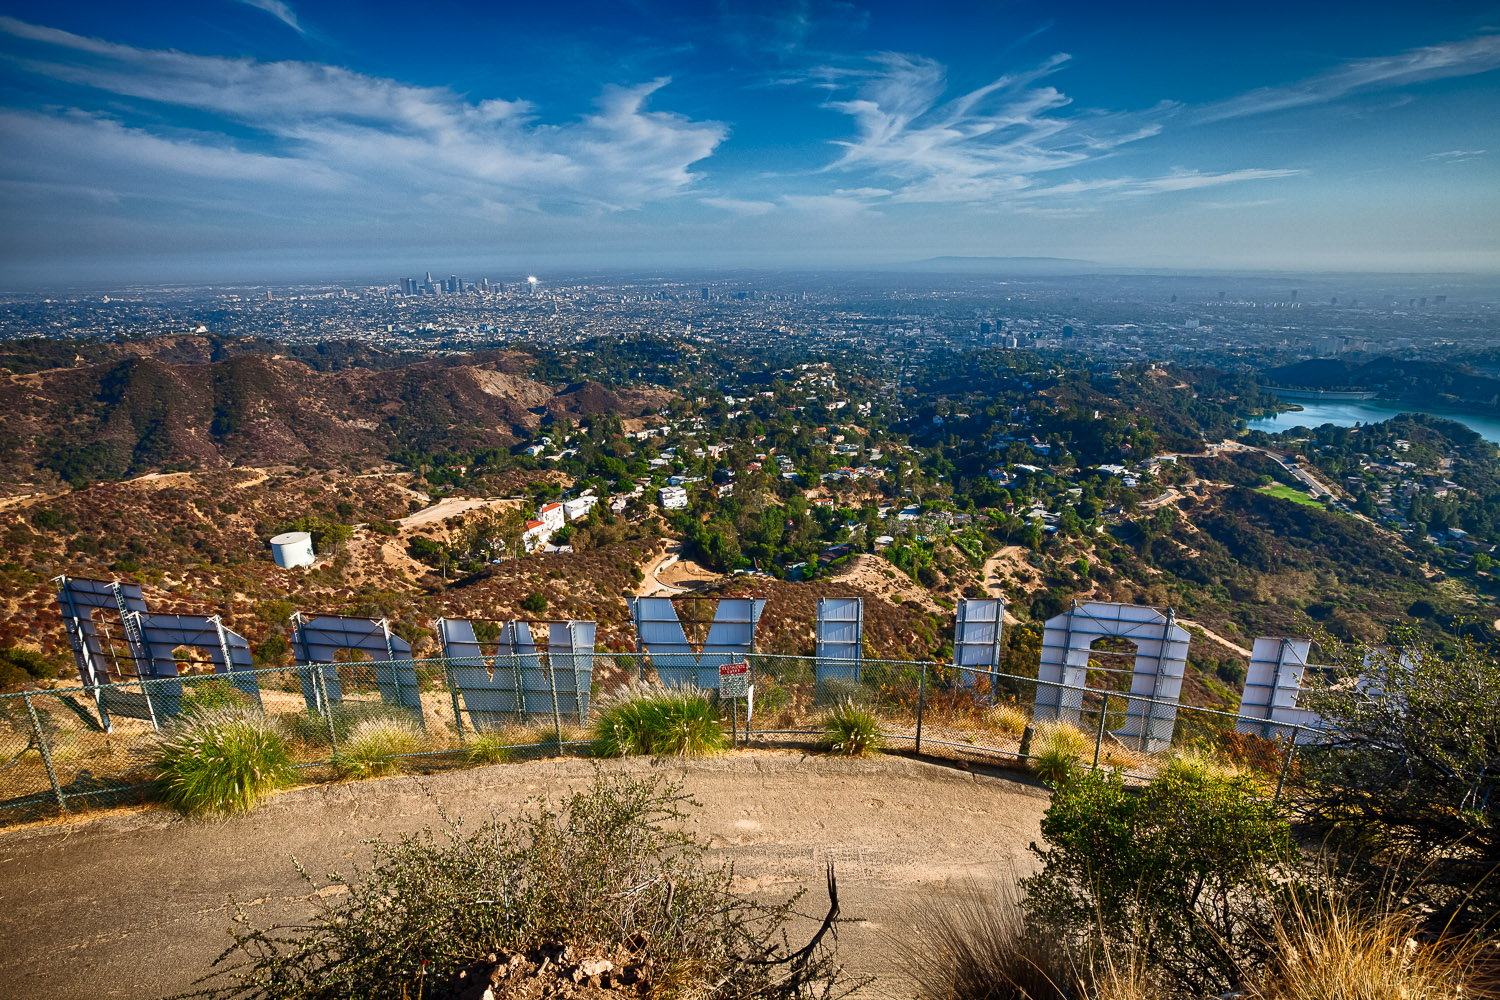 003_Back of the Hollywood Sign.jpg